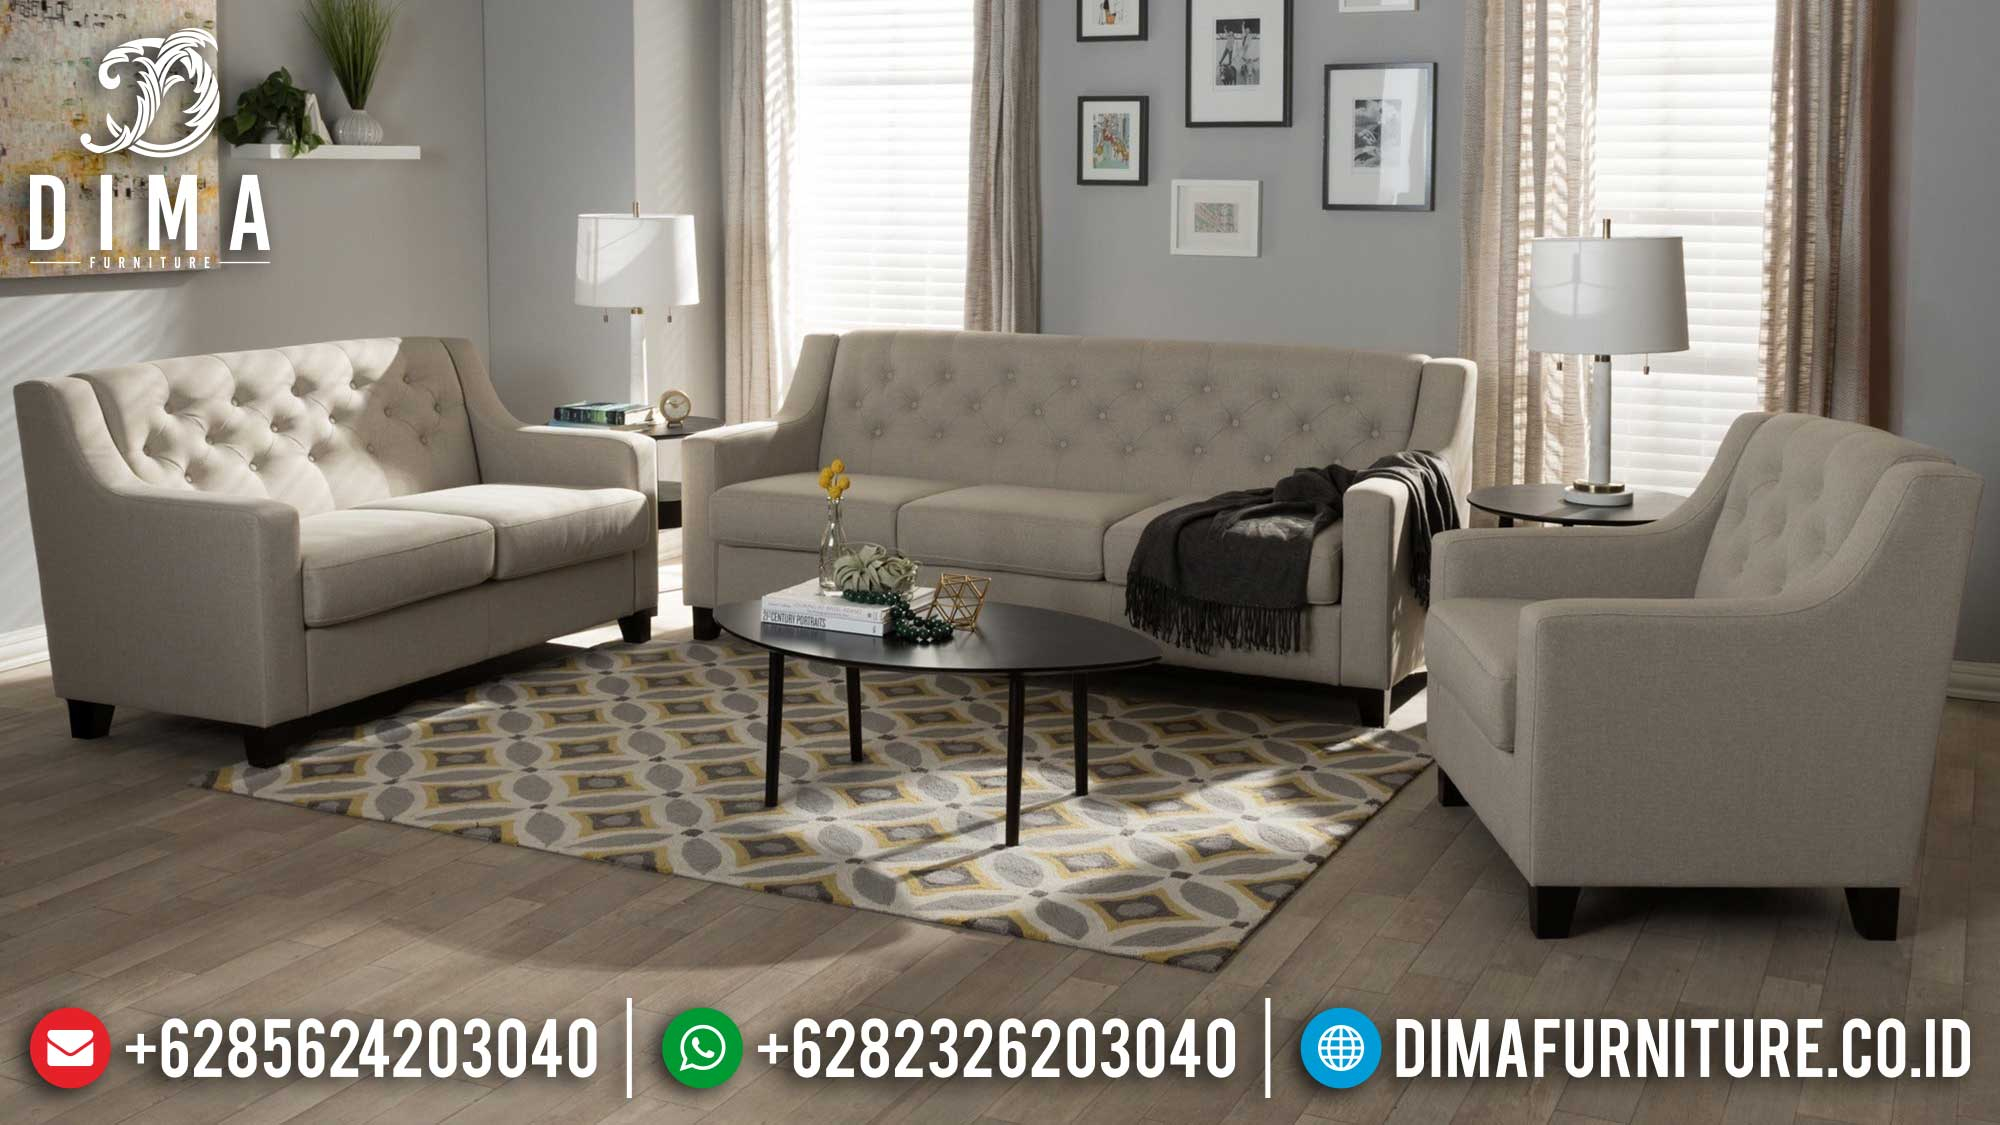 Jual Sofa Ruang Tamu Minimalis New Style Classic Luxurious Set Mm-0893